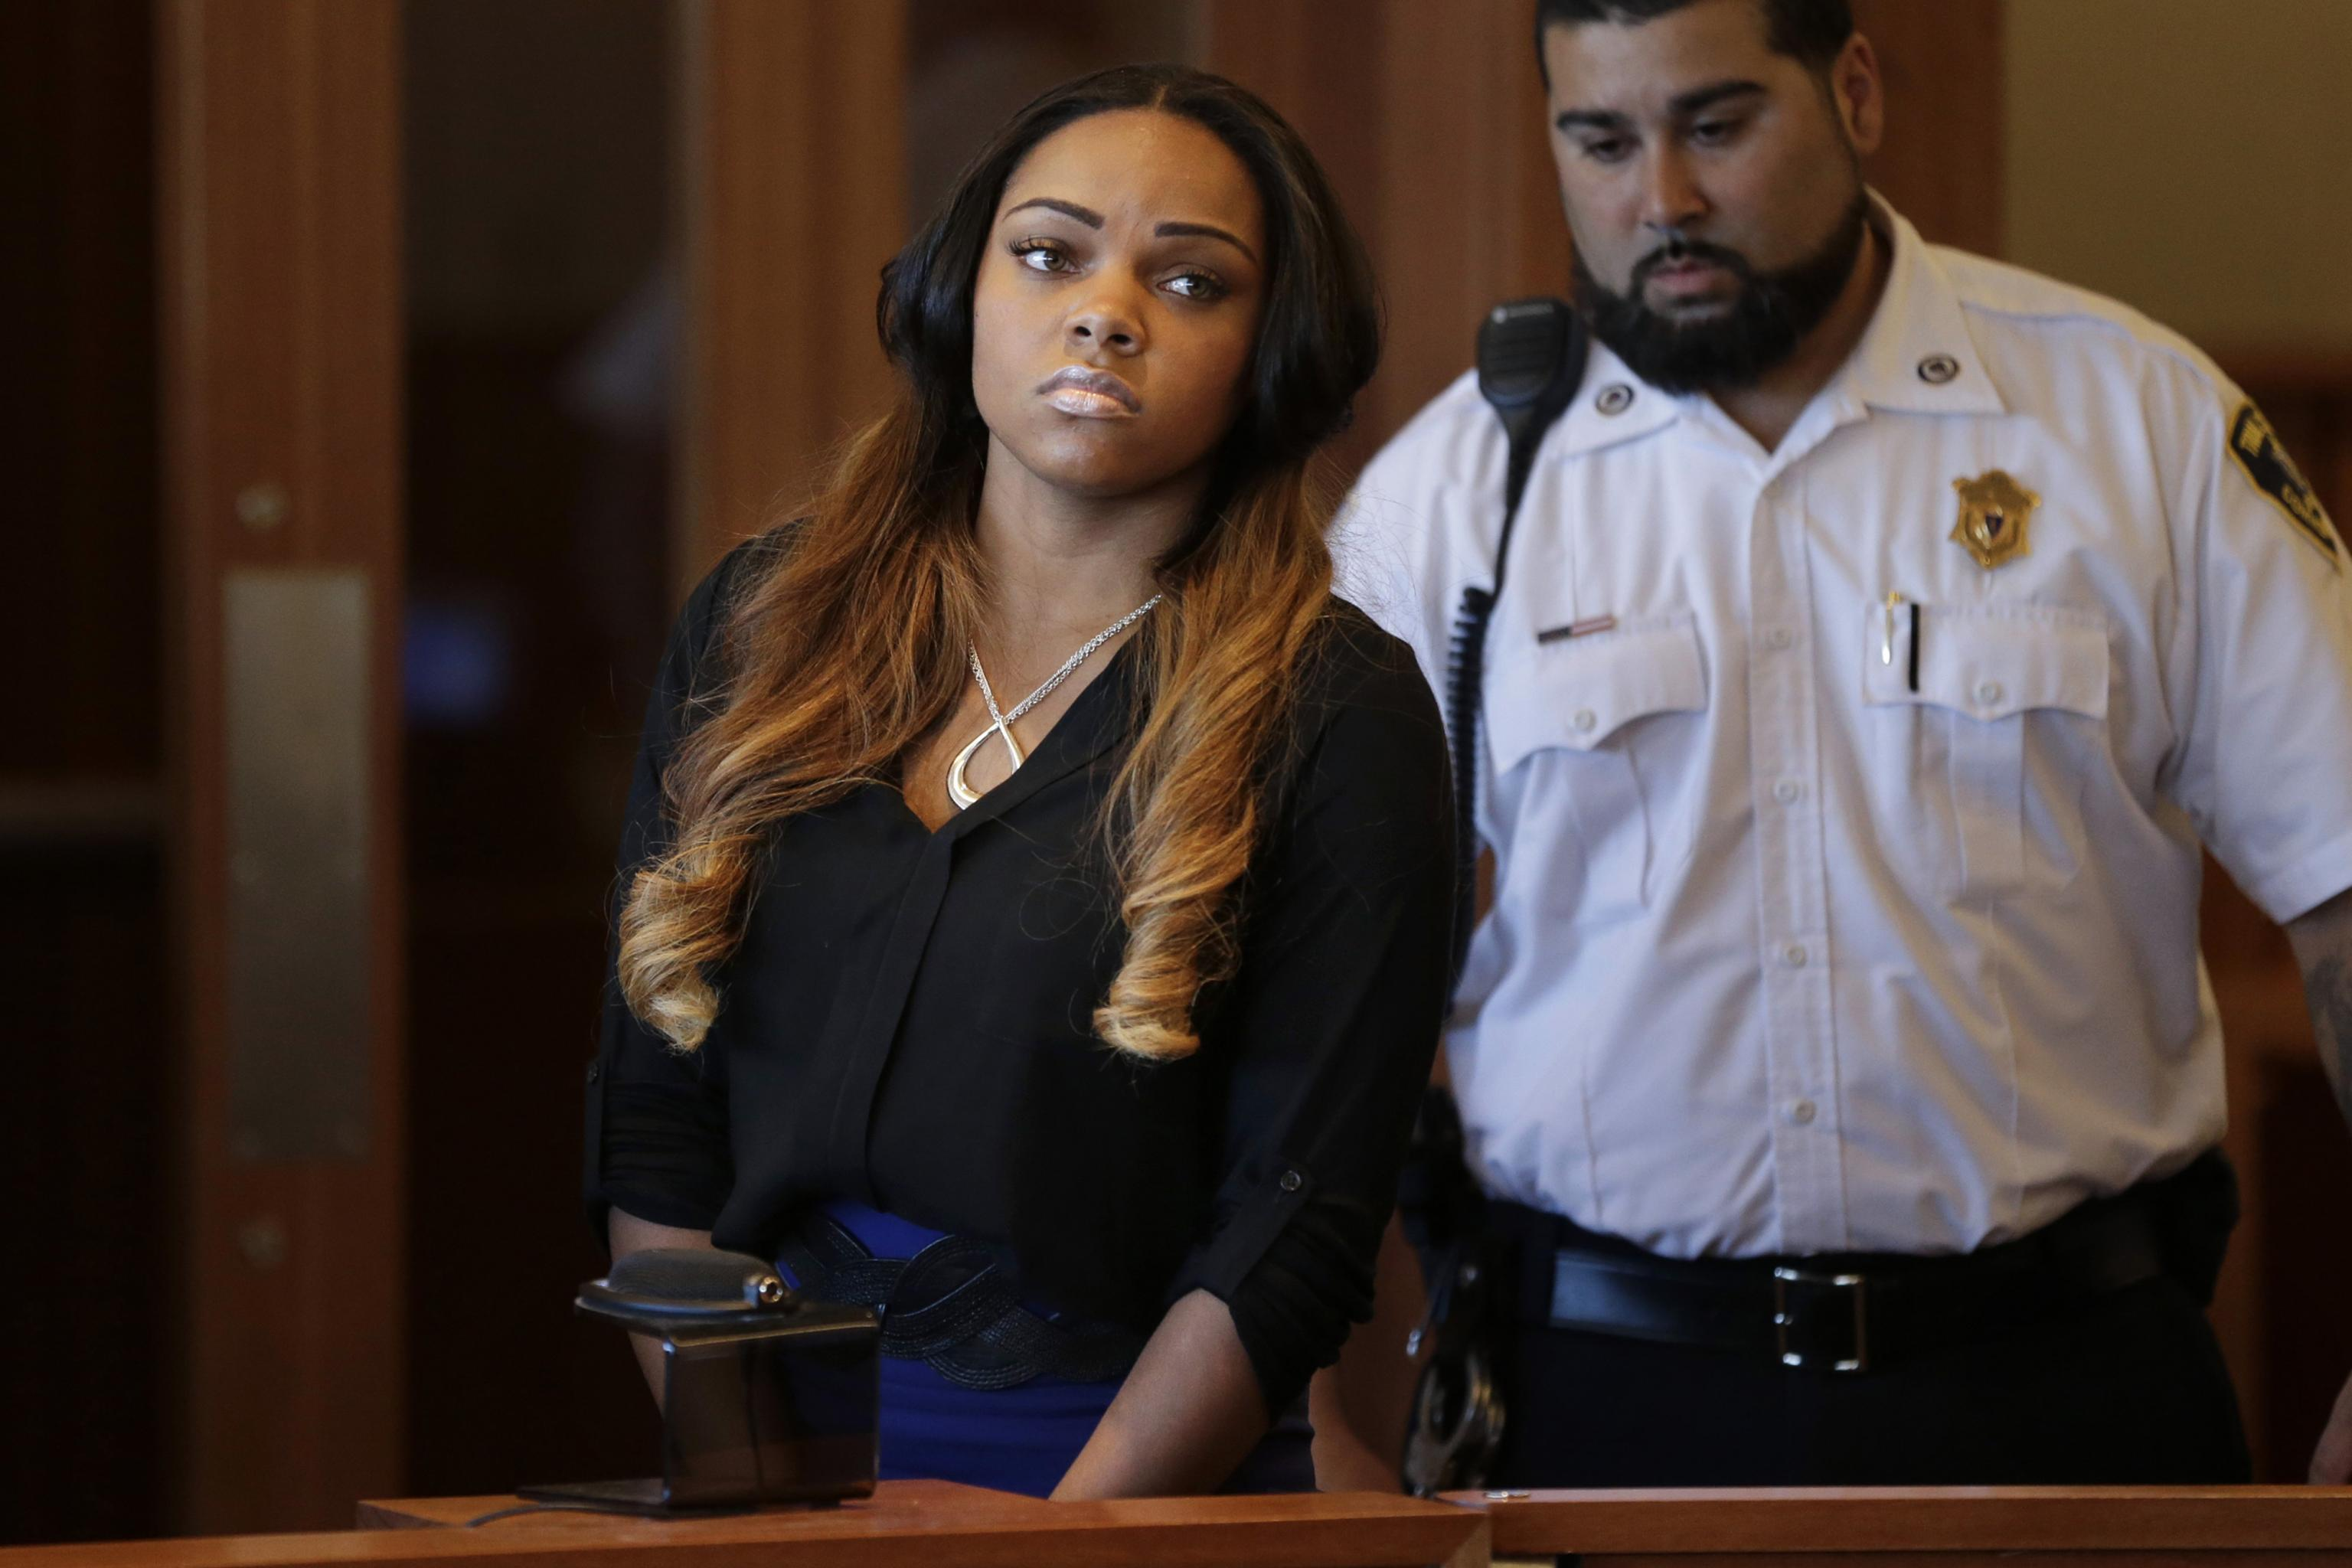 Aaron Hernandez Trial Top Takeaways From Fiancee Shayanna Jenkins Testimony Bleacher Report Latest News Videos And Highlights